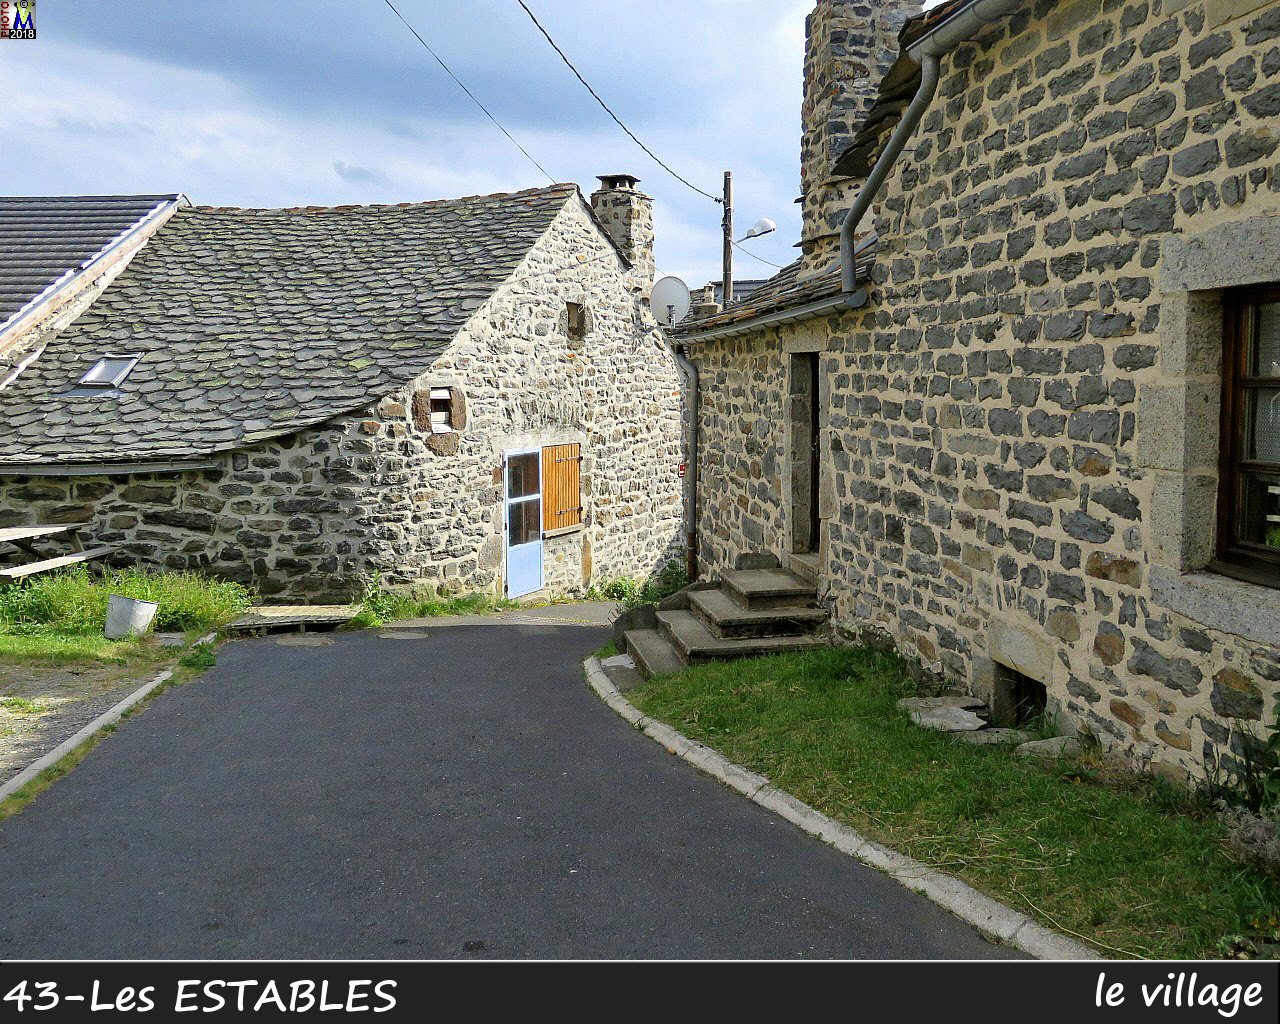 43LesESTABLES_village_104.jpg